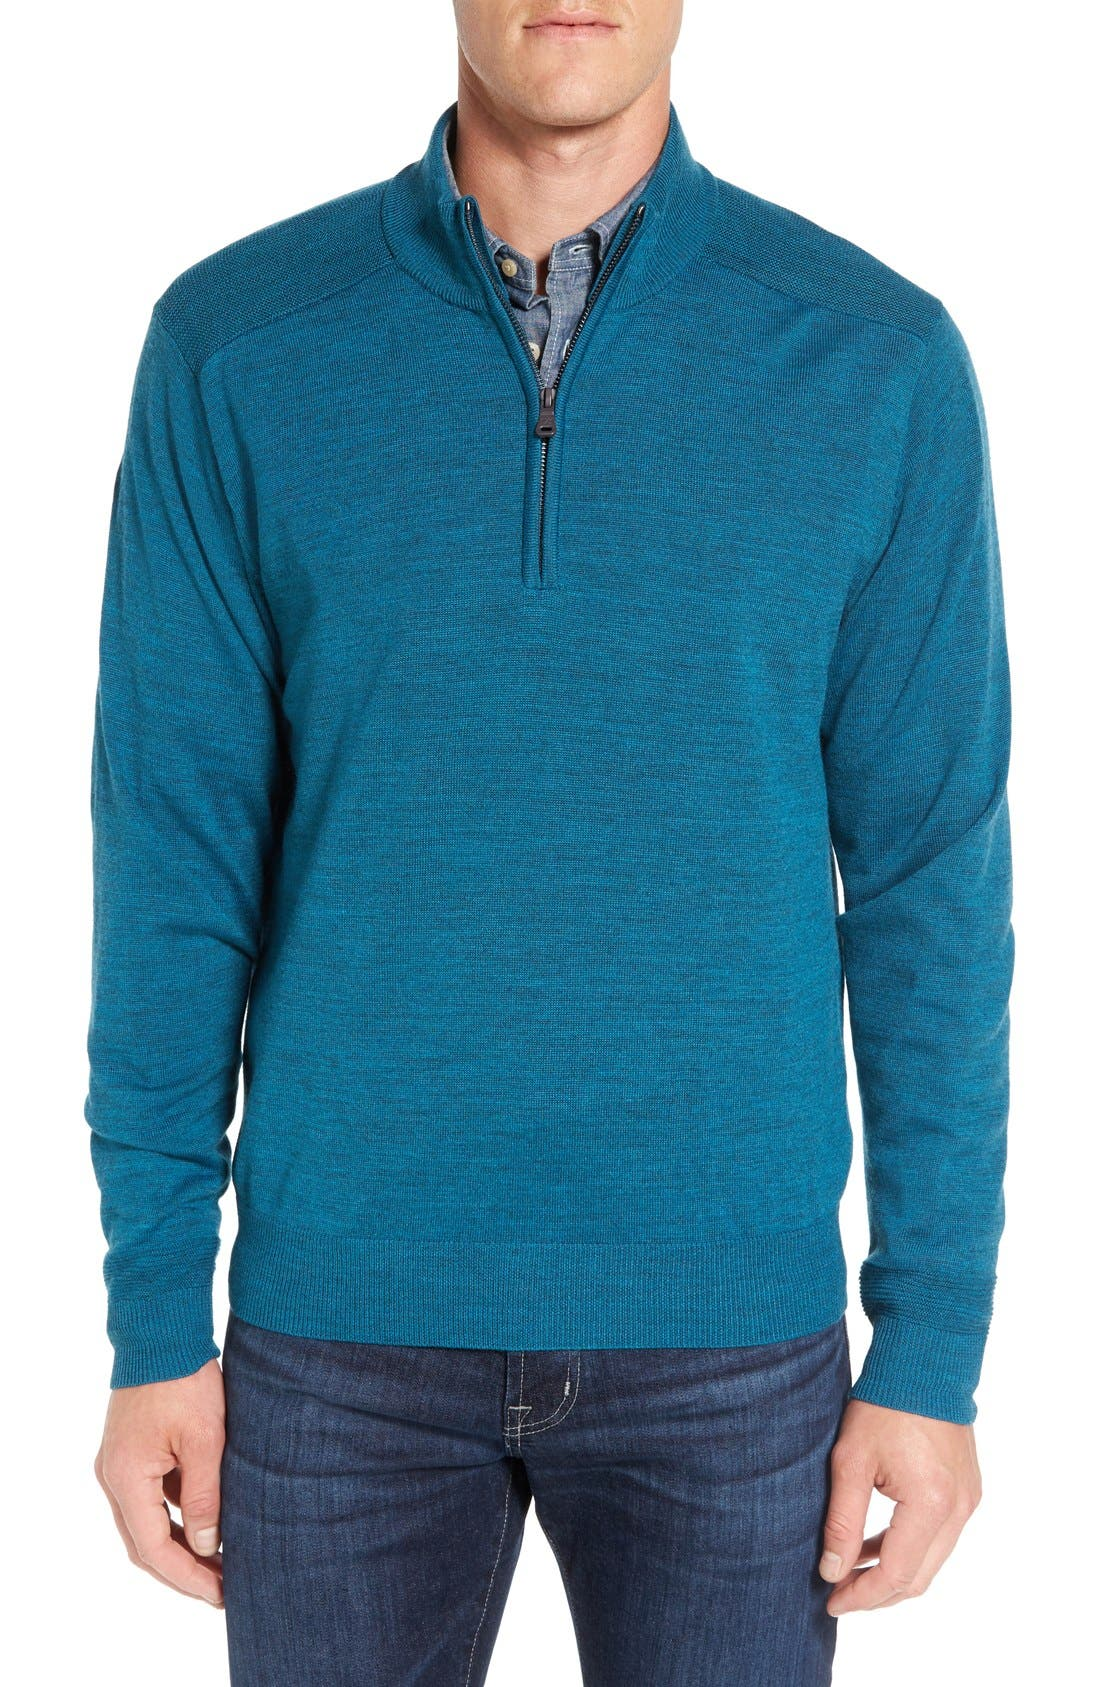 Douglas Quarter Zip Wool Blend Sweater,                             Main thumbnail 1, color,                             Mykonos Heather